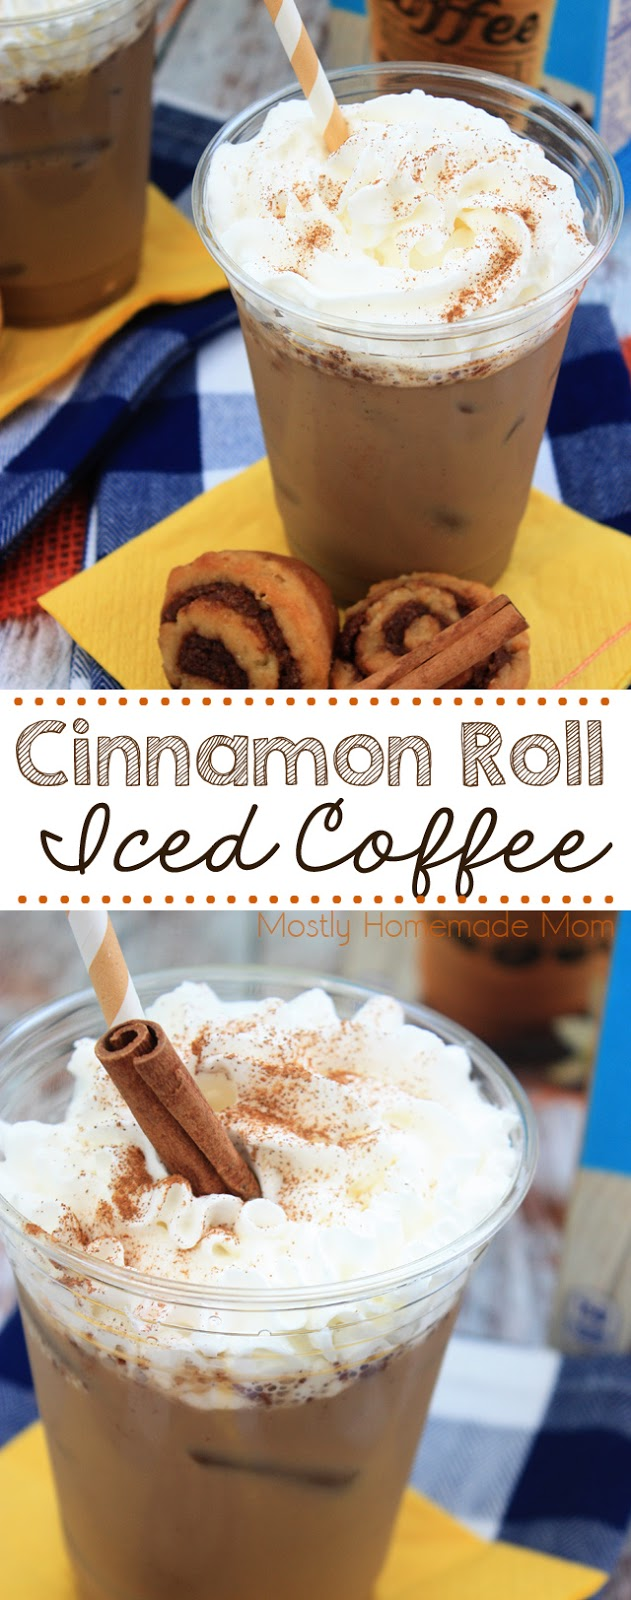 Cinnamon Roll Iced Coffee Recipe